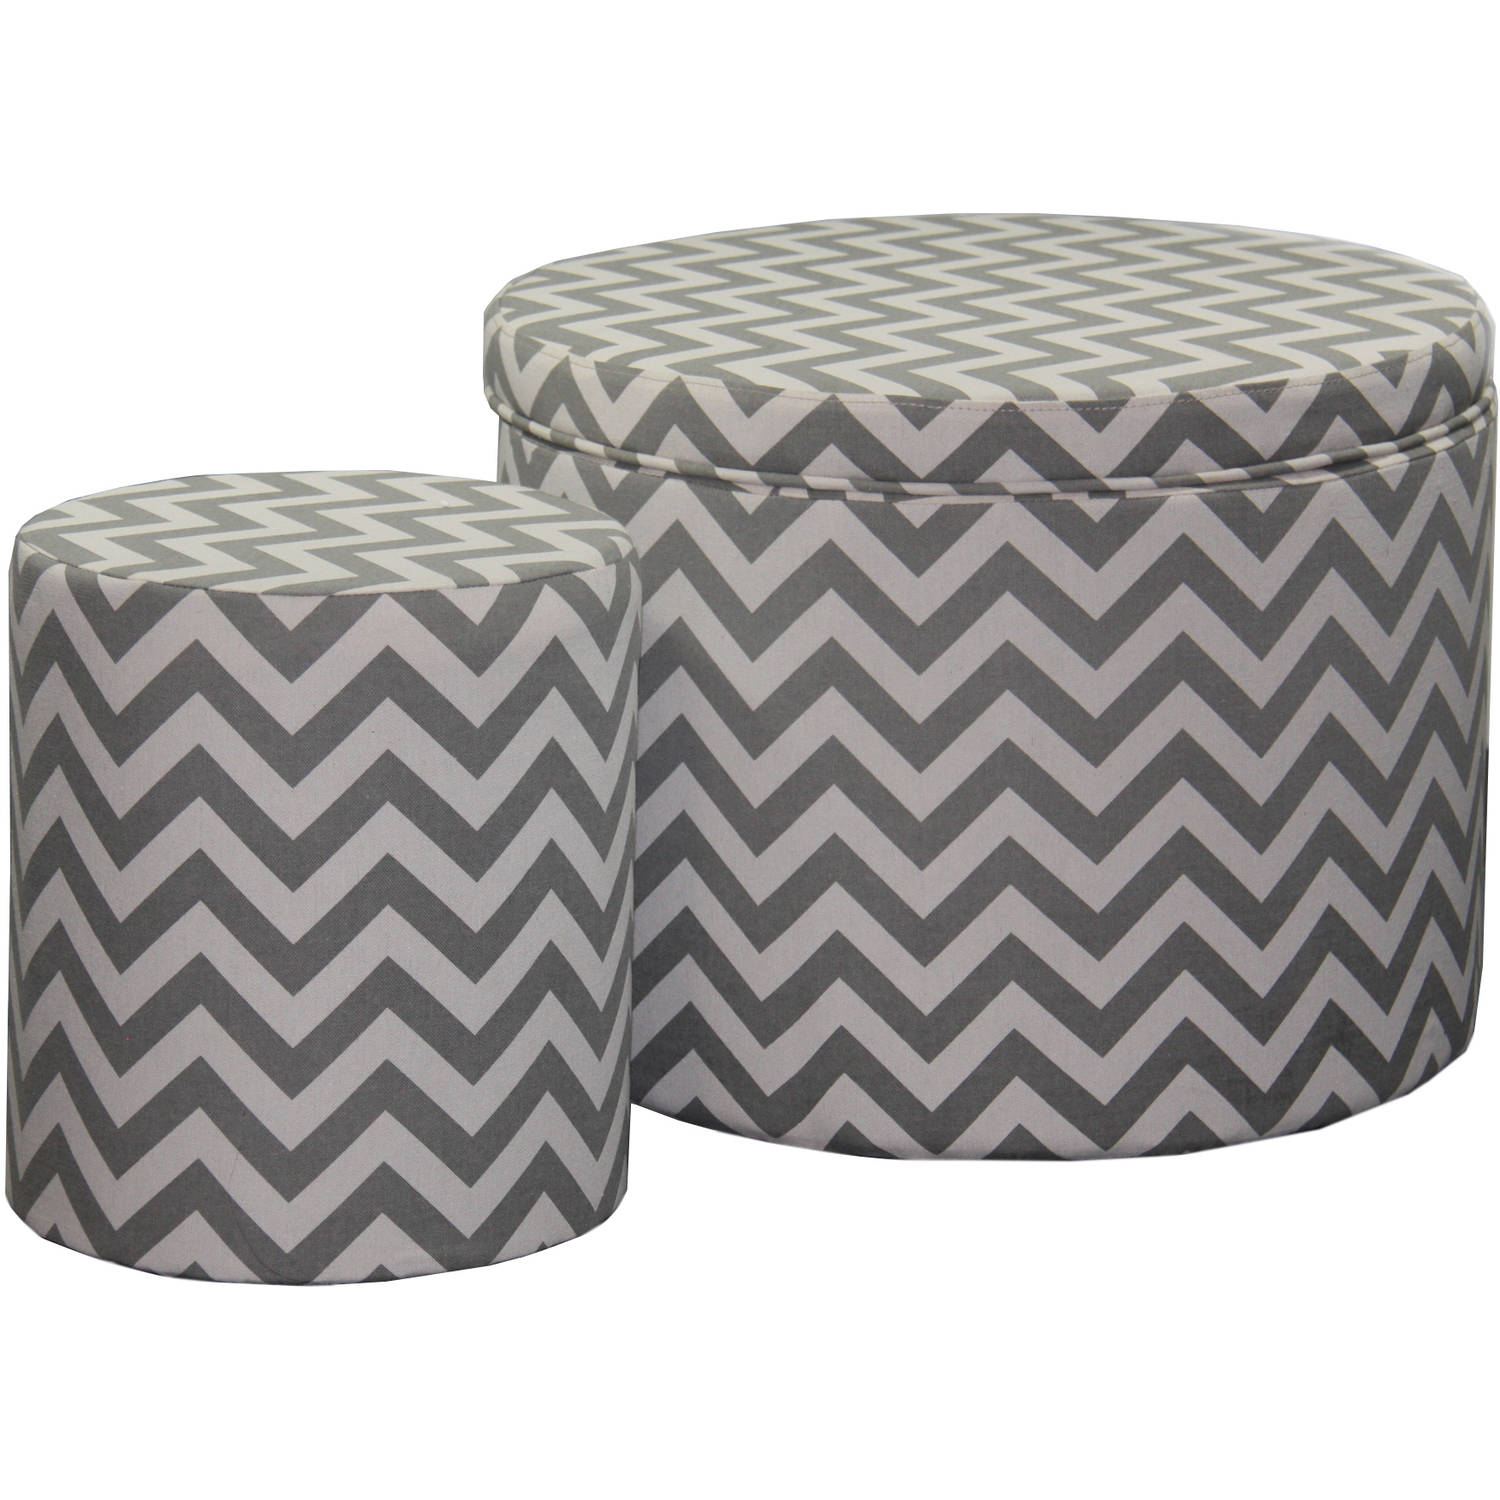 17.35 Chevron Storage Ottoman Plus Extra Seating